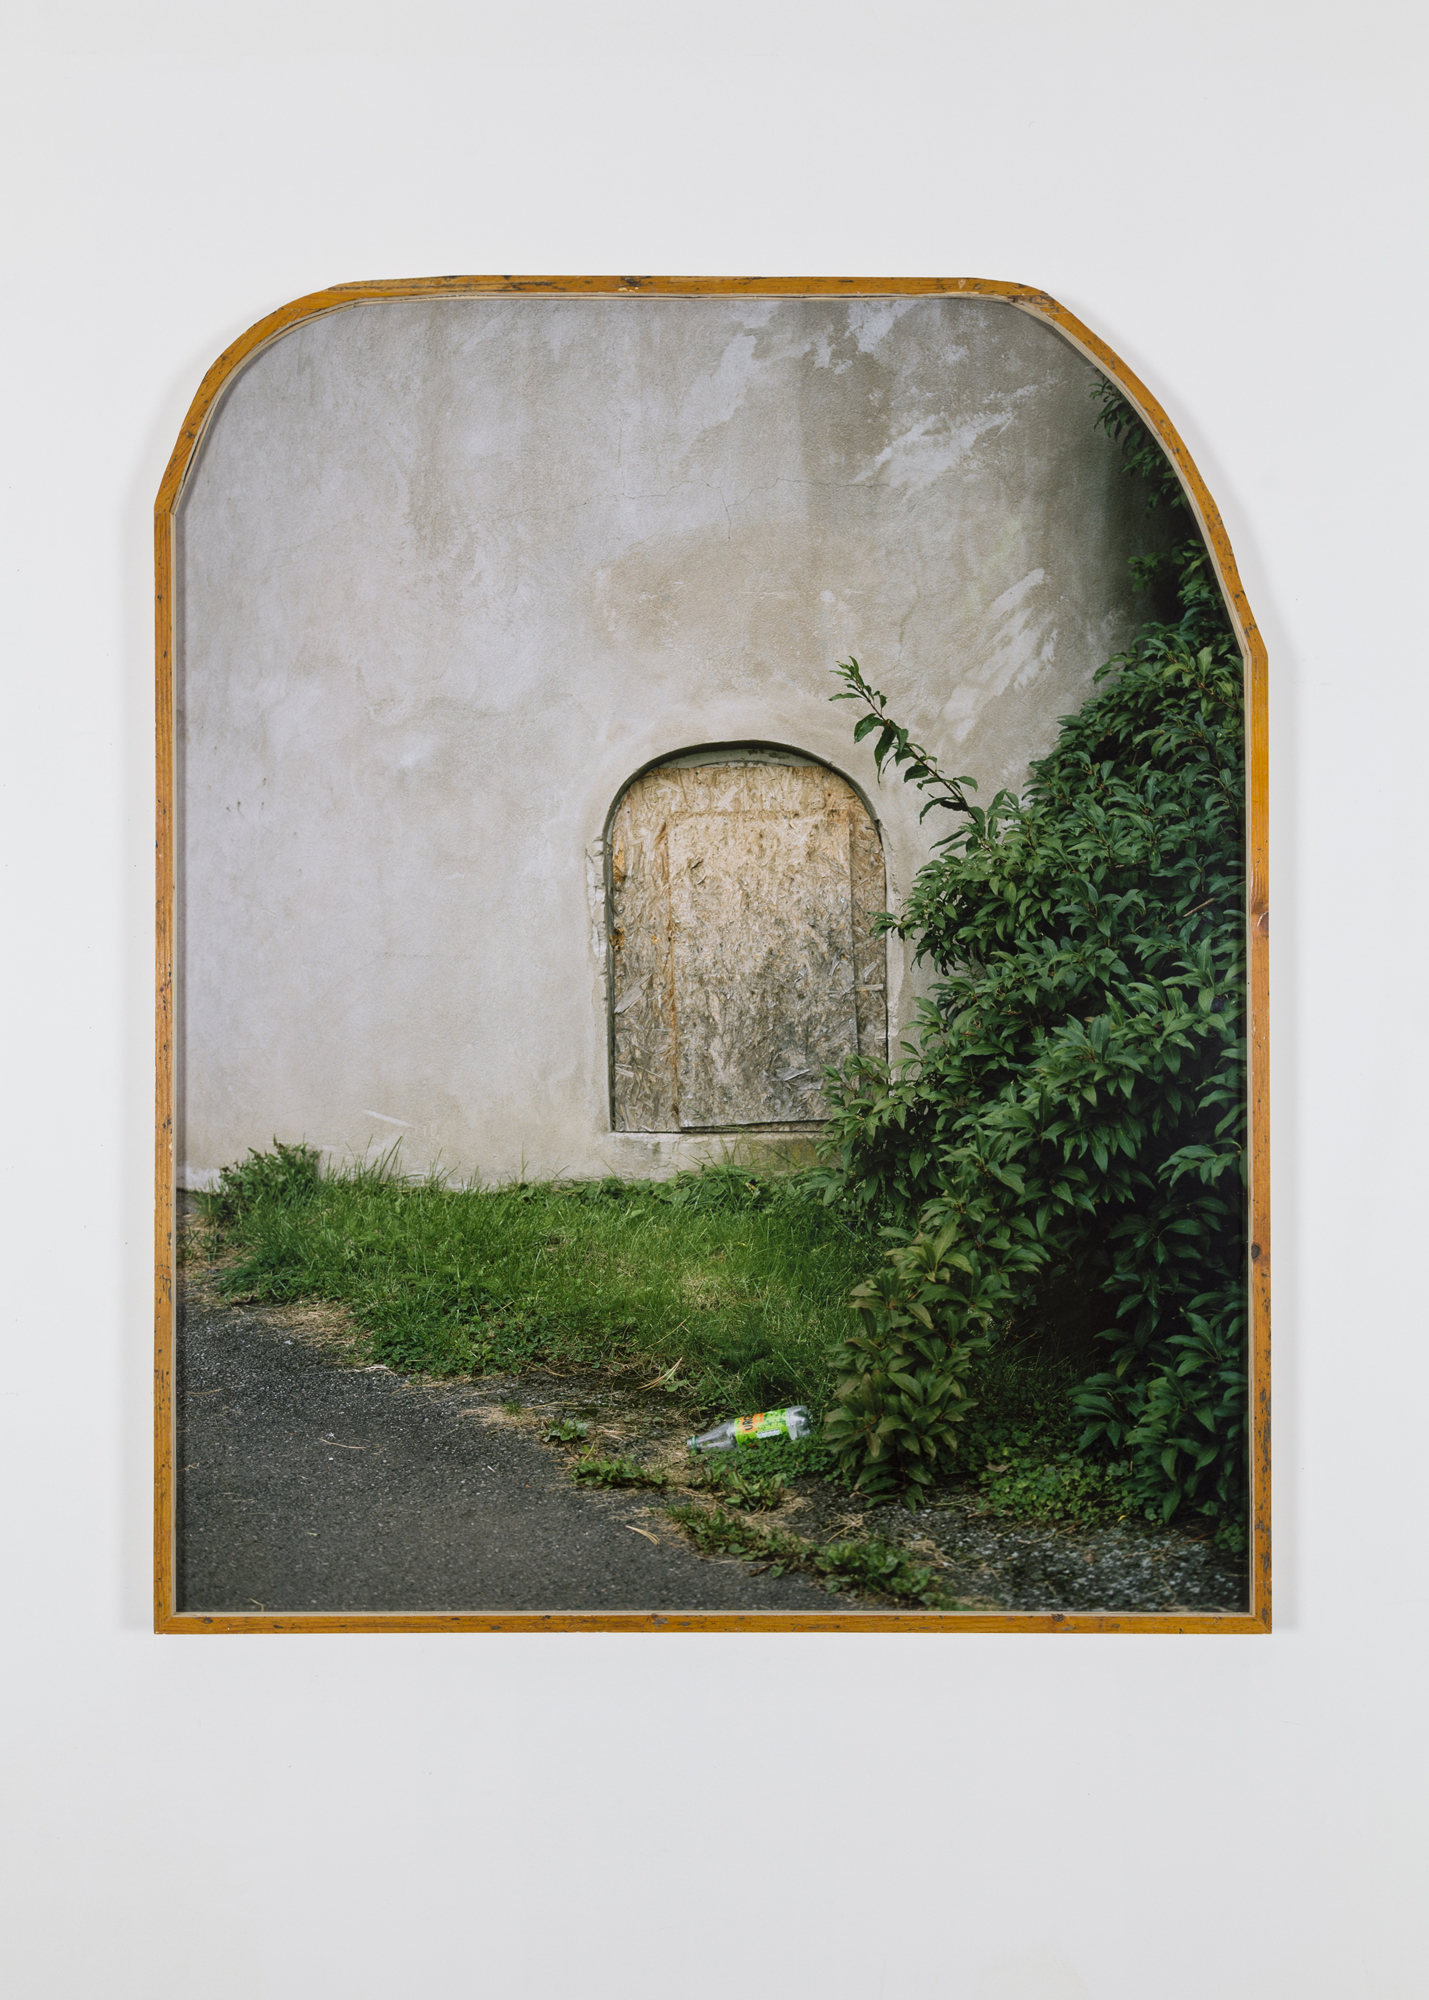 Jon Benjamin Tallerås, Window Sealed Shut #3, 2019, Inkjetprint, ar-glass, artist made frames, 119,5 x 99,5 x 3,5 cm, Unique